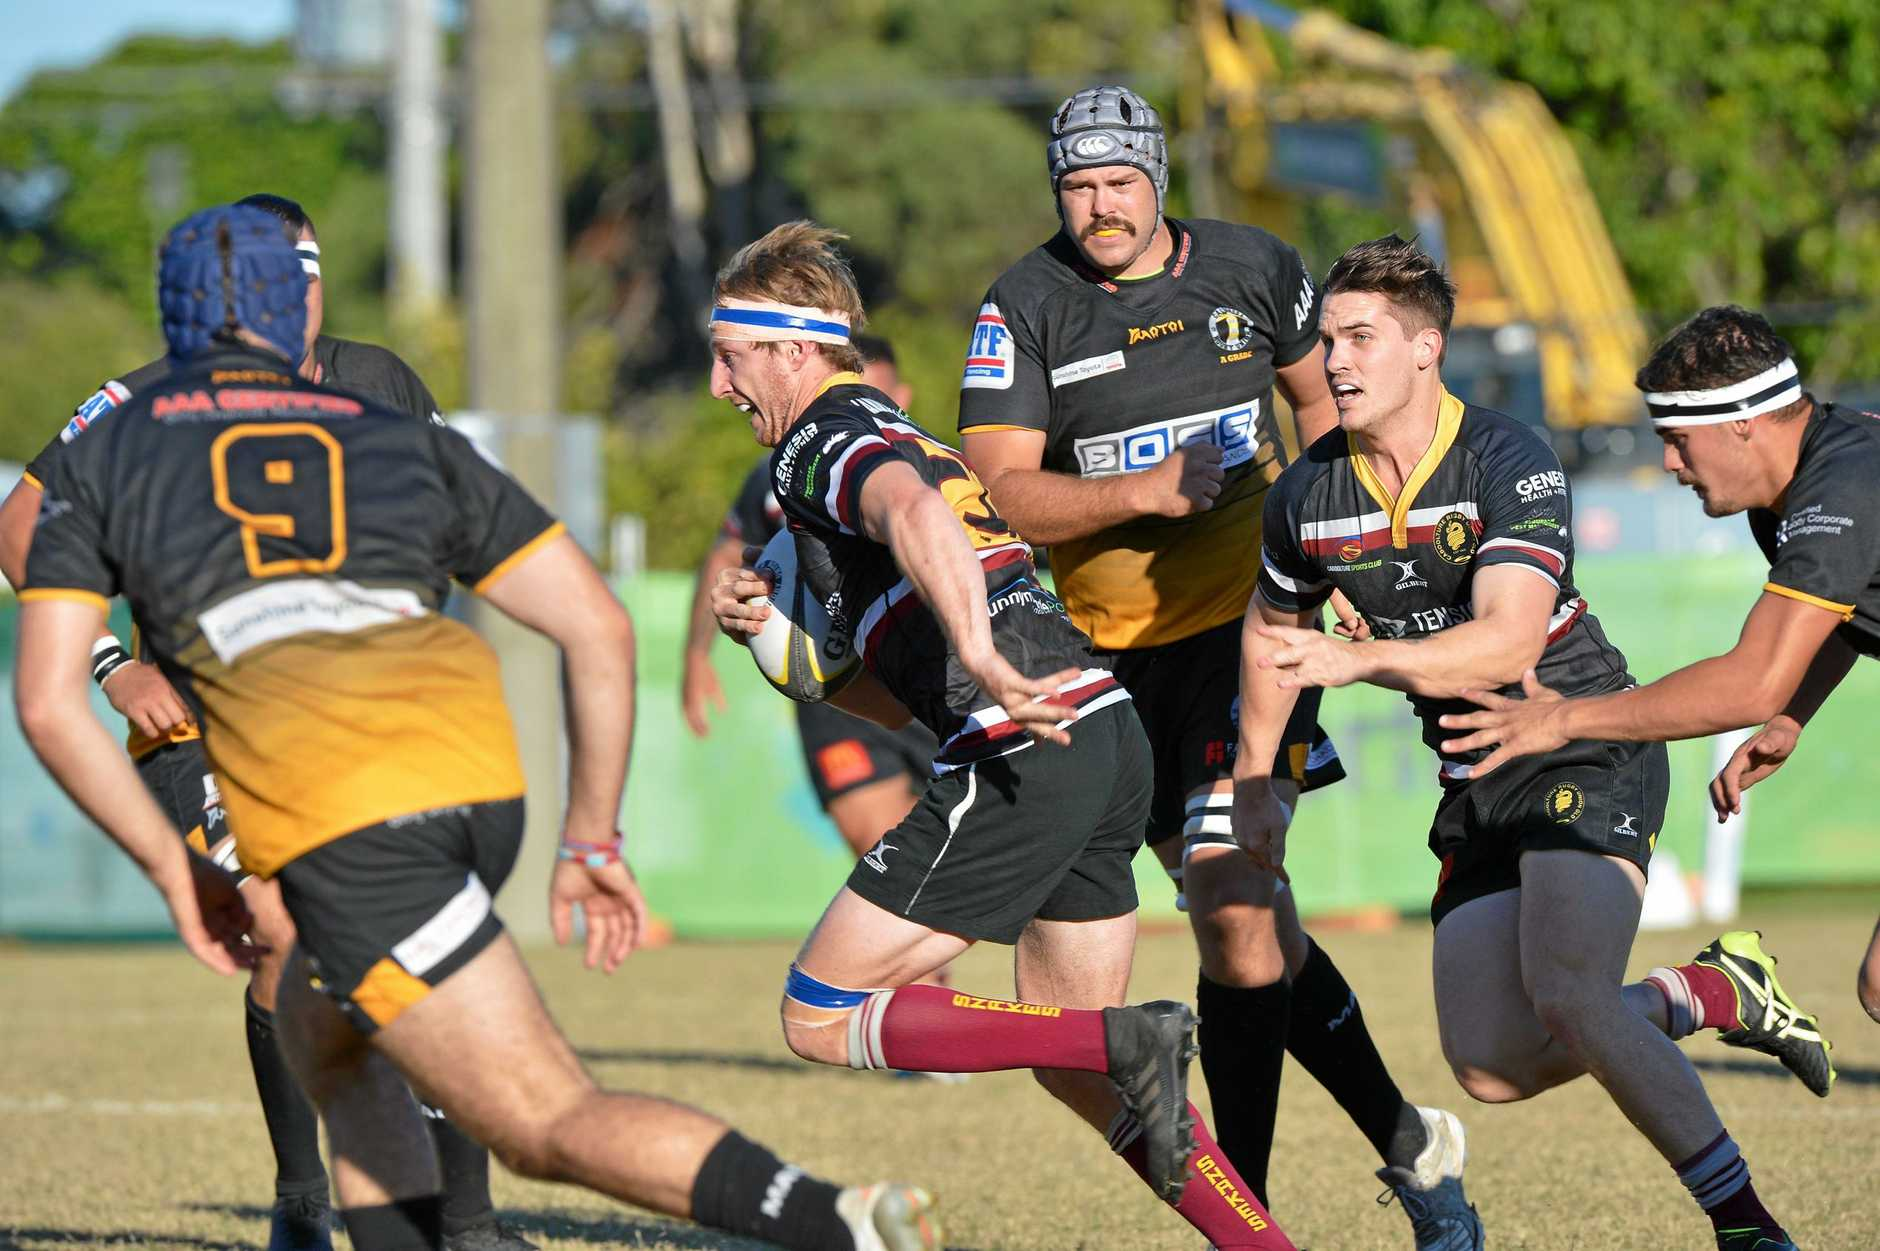 ON THE RUN: Caboolture and Caloundra played in a Sunshine Coast A-grade game.